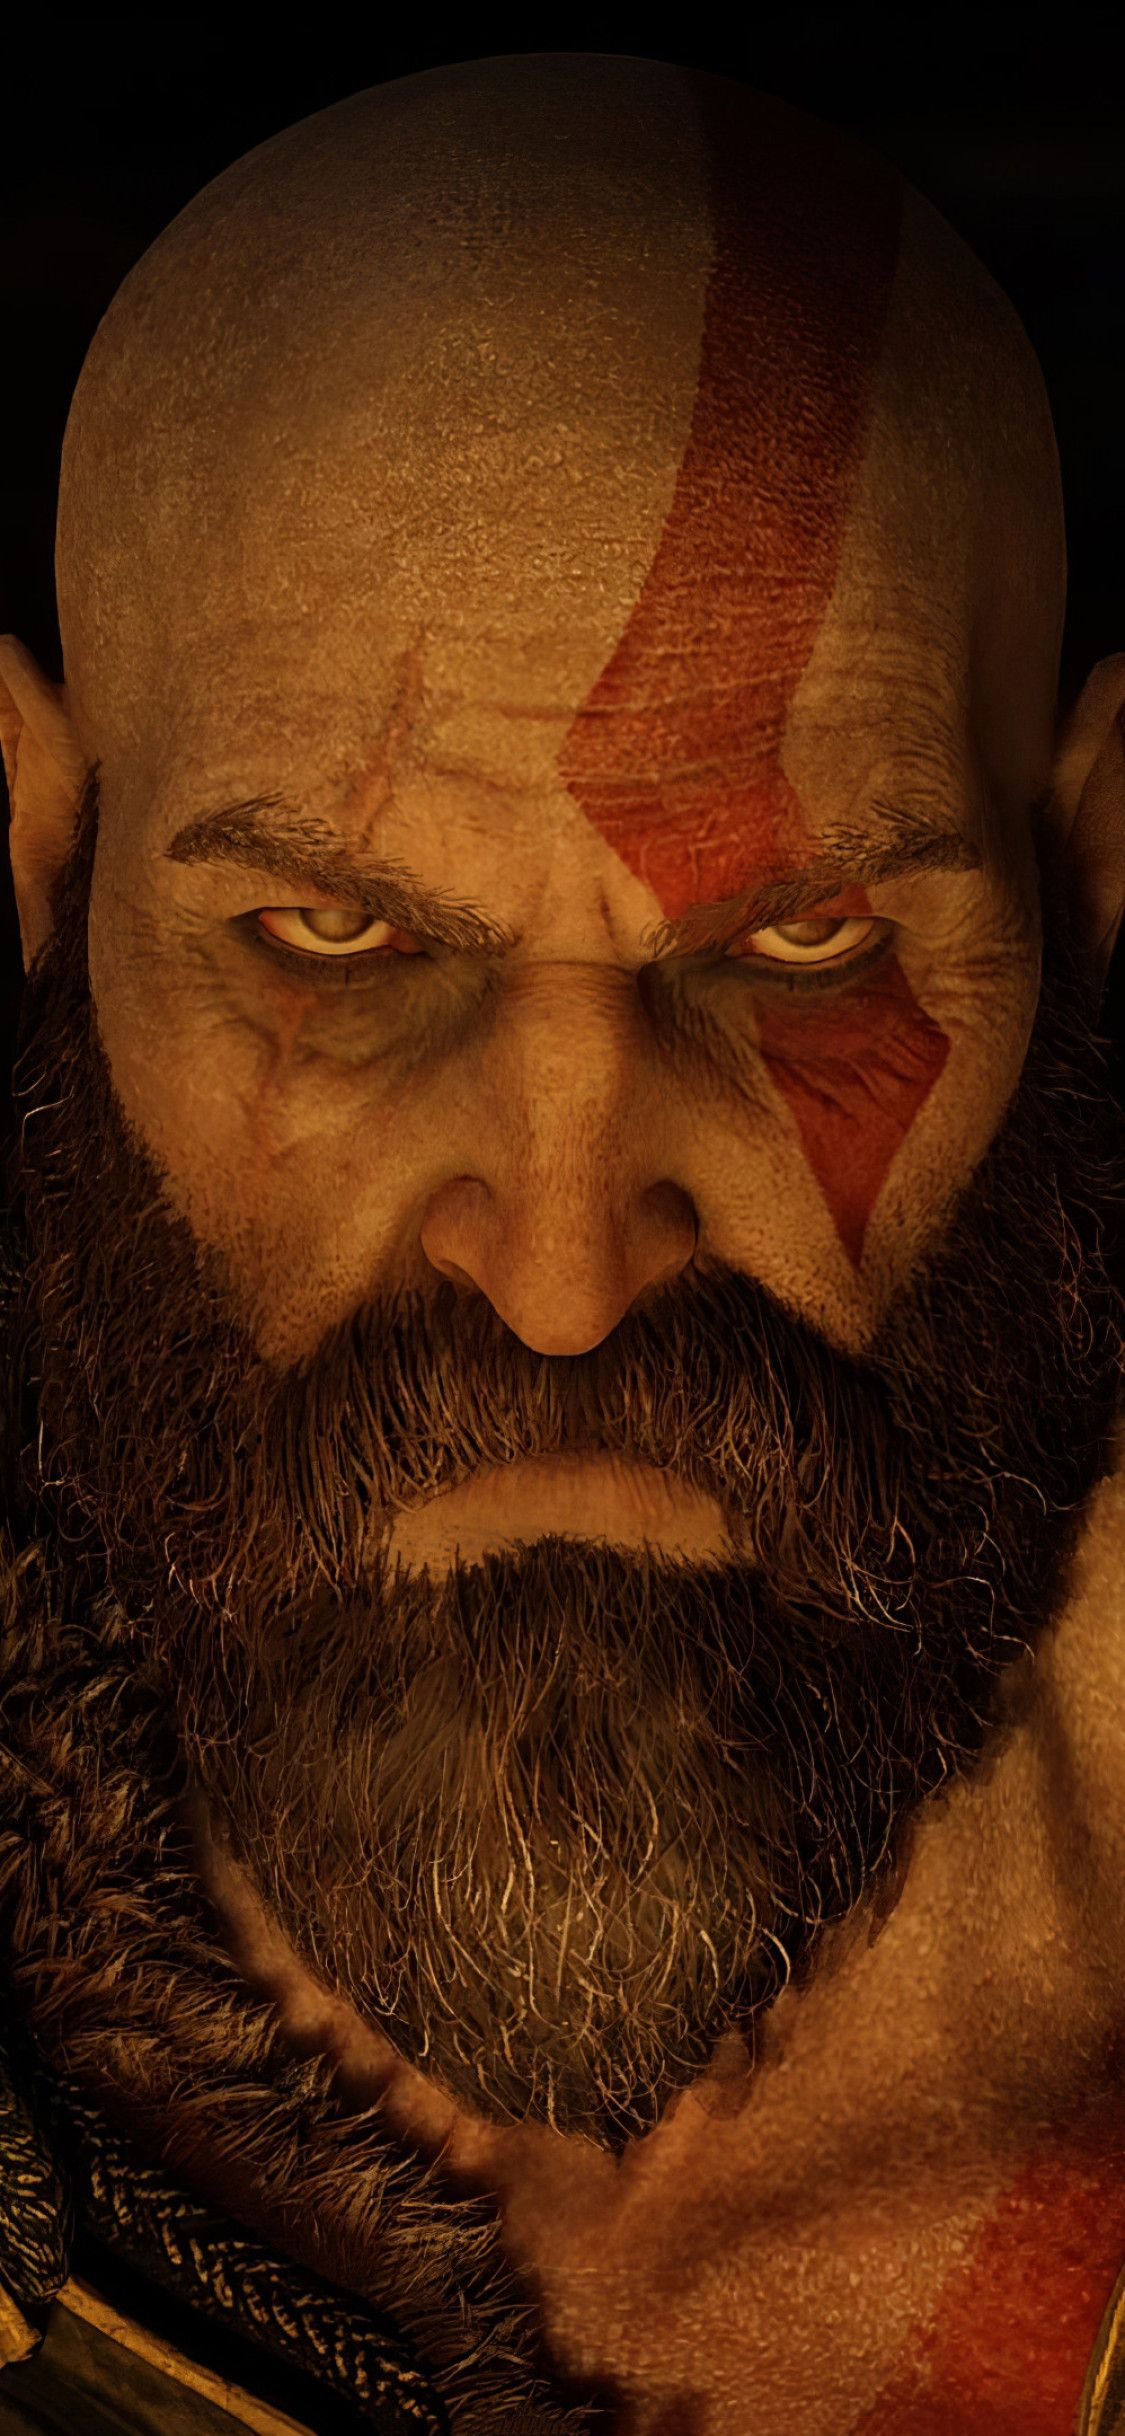 1125x2436 Kratos Angry Eyes God Of War 4 Iphone Xs Iphone 10 Iphone X Hd 4k Wallpapers Images Backgrounds Photos And Kratos God Of War God Of War Angry Eyes